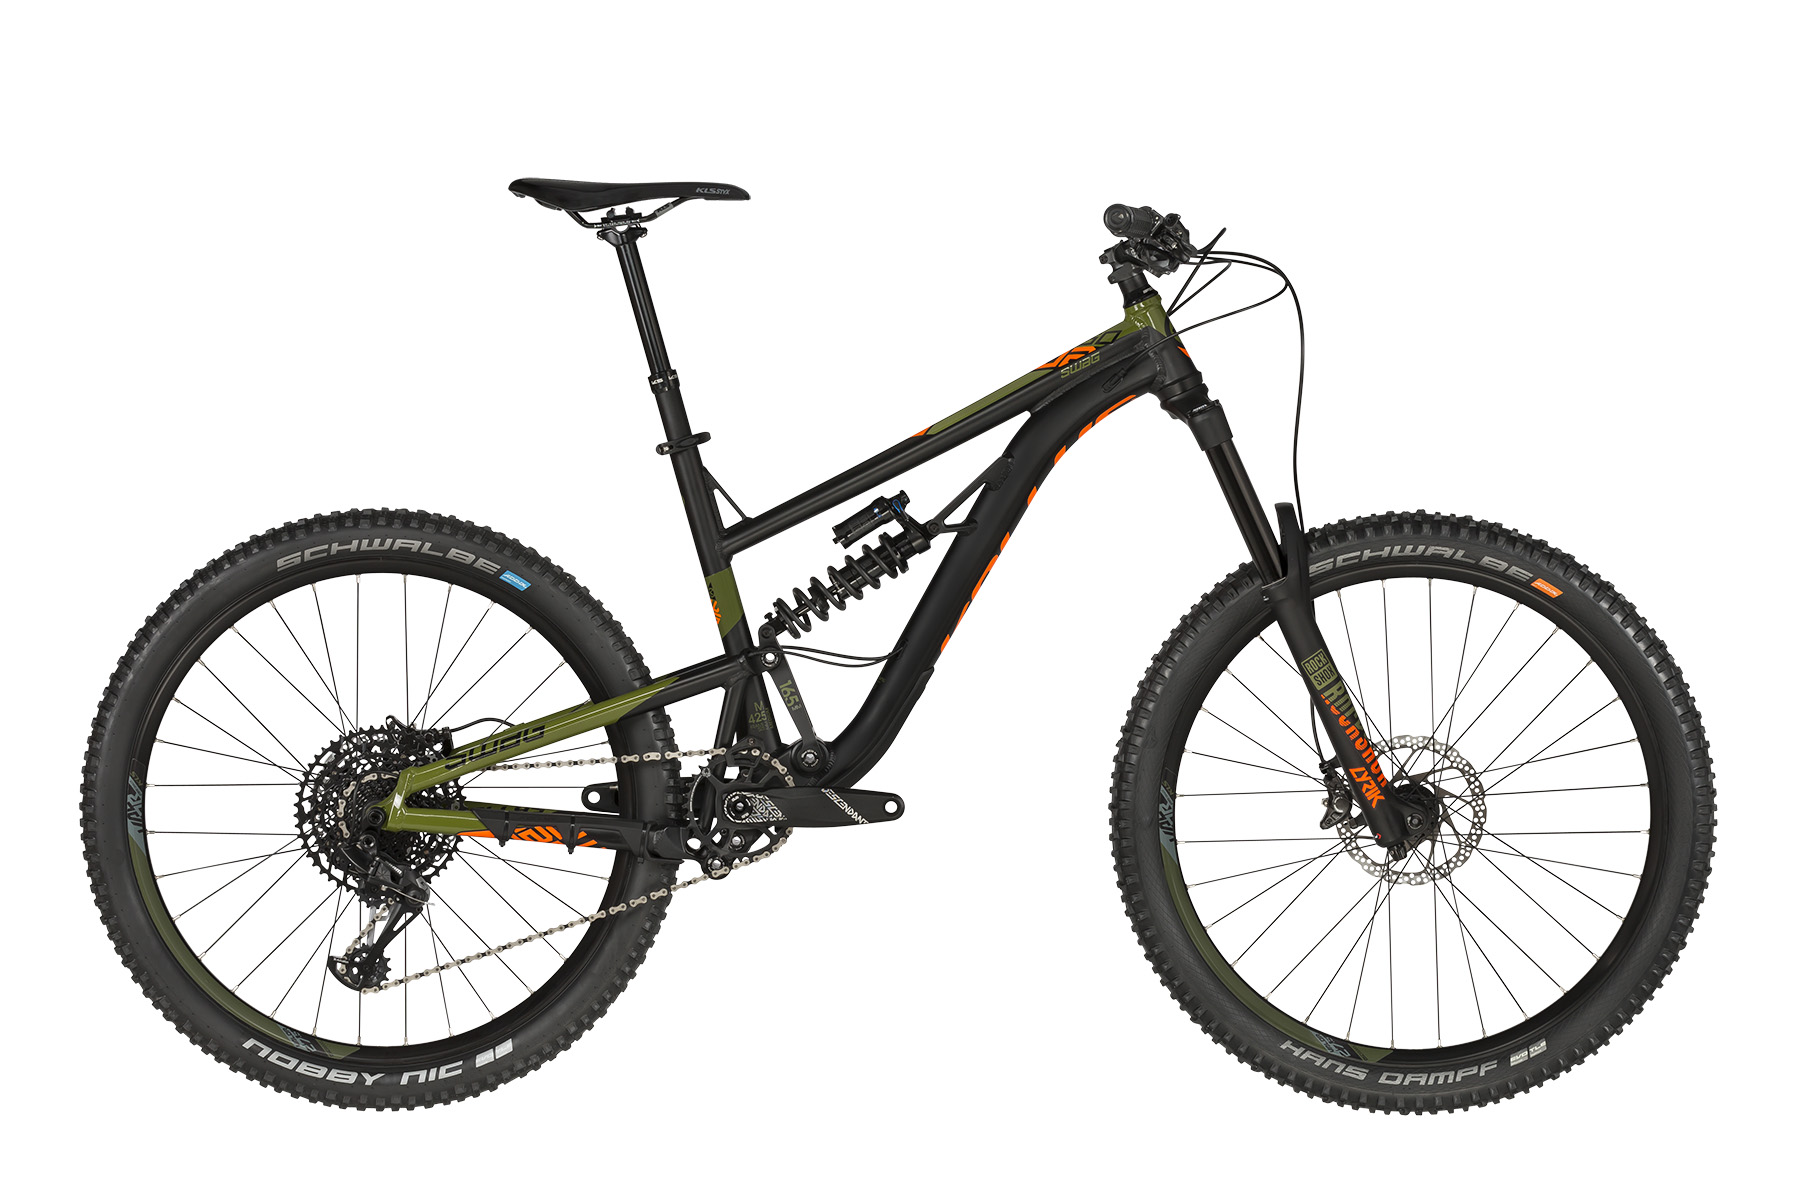 <strong>Bicicleta full suspension </strong>cu telescop pe fataROCK SHOX Lyrik RC si telescop pe spateROCK SHOX Super Deluxe Coil RCT.</p><p><strong>Bicicleta enduro </strong>cu frane hidraulice Deore XT si schimbator de spateSRAM GX Eagle de 12 viteze.</p><p><strong>frame</strong>KELLYS Enduro 27.5 / Think Link suspension system, 165mm rear travel, tapered HT, internal routing, 12x148mm Boost thru axle<br /><strong>frame size</strong>S / M / L<br /><strong>fork</strong>ROCK SHOX Lyrik RC (27.5) Boost, 170mm, DebonAir / Charger 2 Damper / Maxle Stealth 15mm thru axle<br /><strong>rear shock</strong>ROCK SHOX Super Deluxe Coil RCT, coil / Rapid Recovery / Open-Pedal (230x65mm)<br /><strong>head parts</strong>FSA 1.5 integrated<br /><strong>b.b.parts</strong>SRAM DUB PressFit<br /><strong>crankset</strong>TRUVATIV Descendant 6K Eagle DUB 1x X-Sync 2 (32) - length 175mm<br /><strong>shifters</strong>SRAM GX Eagle Trigger<br /><strong>f/derailleur</strong>chain guide MOZARTT HXR, ISCG 05<br /><strong>r/derailleur</strong>SRAM GX Eagle<br /><strong>speed</strong>12<br /><strong>cassette sprocket</strong>SRAM PG-1230-12 Eagle (11-50)<br /><strong>chain</strong>SRAM GX Eagle (112 links)<br /><strong>brakes</strong>SHIMANO Deore XT M8000 Hydraulic Disc<br /><strong>brake rotors</strong>180mm front / 180mm rear<br /><strong>brake levers</strong>SHIMANO Deore XT BL-M8000<br /><strong>hubs</strong>NOVATEC Disc (15x110mm / 12x148mm / 32 holes)<br /><strong>thru axle</strong>ROCK SHOX Maxle Stealth 15x110mm front / Mr.CONTROL 12x148mm rear<br /><strong>rims</strong>KLS Valor 2 Disc 584x27 (32 holes)<br /><strong>tires</strong>SCHWALBE Hans Dampf 60-584 (27.5x2.35) SnakeSkin, Tubeless Easy, ADDIX Soft, folding front / Nobby Nic 60-584 (27.5x2.35) SnakeSkin, Tubeless Easy, ADDIX Speedgrip, folding rear<br /><strong>stem</strong>RACE FACE Aeffect R 35 - diam 28.6mm / bar bore 35mm / 0° / length 50mm<br /><strong>handlebar</strong>RACE FACE Aeffect R 35 RiseBar - diam 35mm / rise 20m